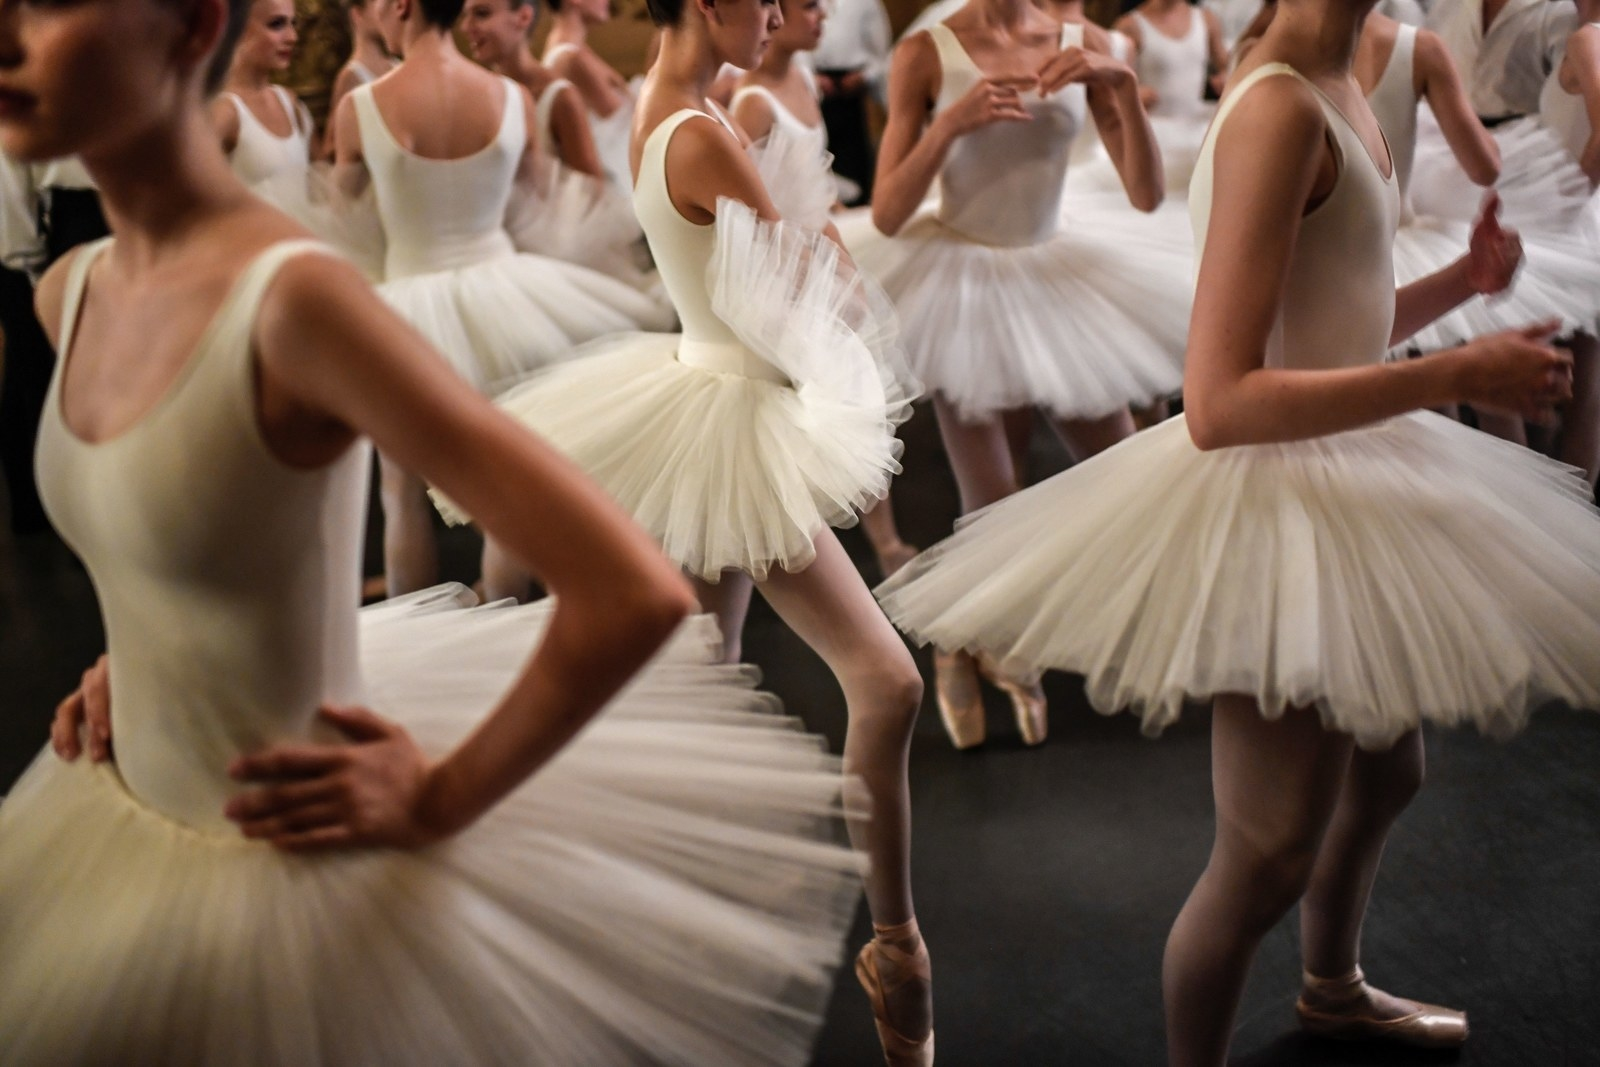 Is There Such A Thing As Ballet That Doesn't Hurt Women?